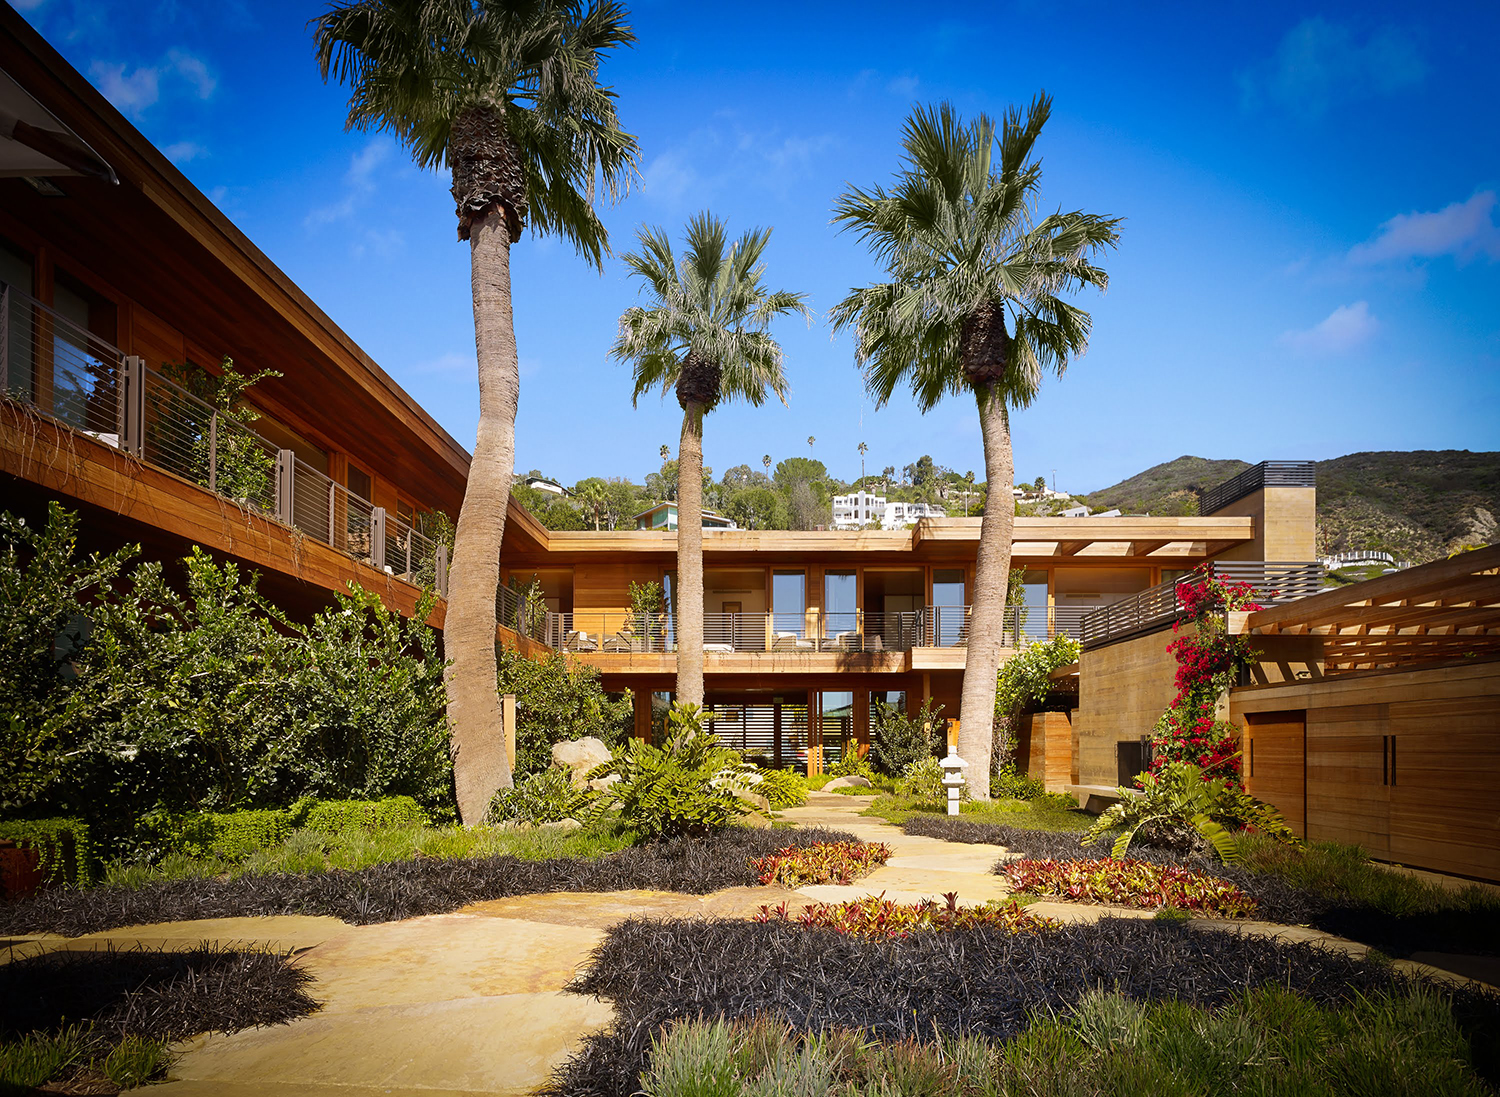 The property blends the minimalist aesthetic of traditional Japanese inns with the cool elegance of the California coastline.